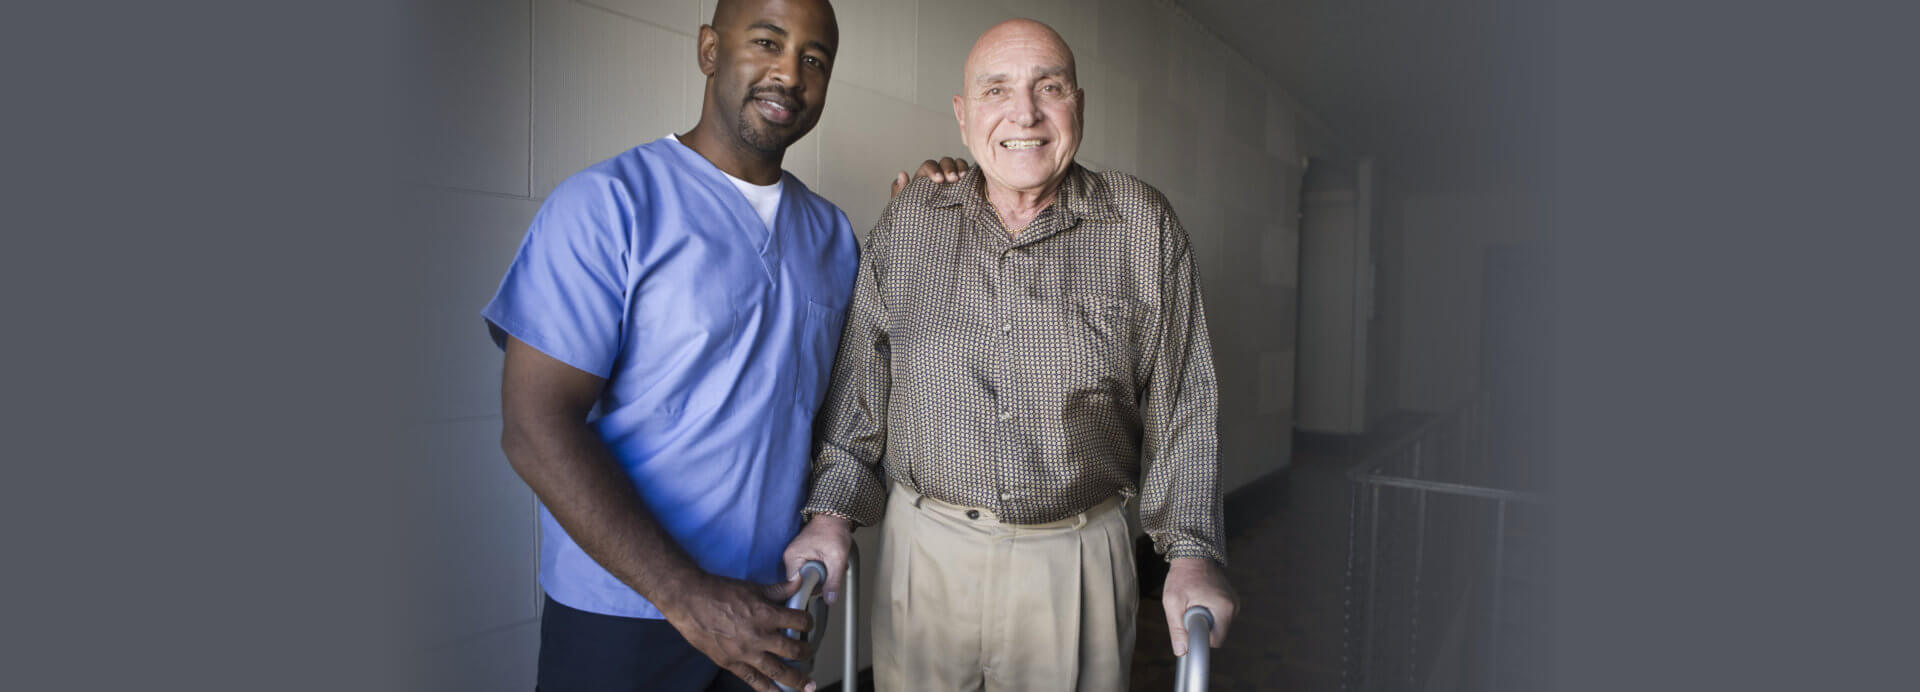 old man assisted by a black man